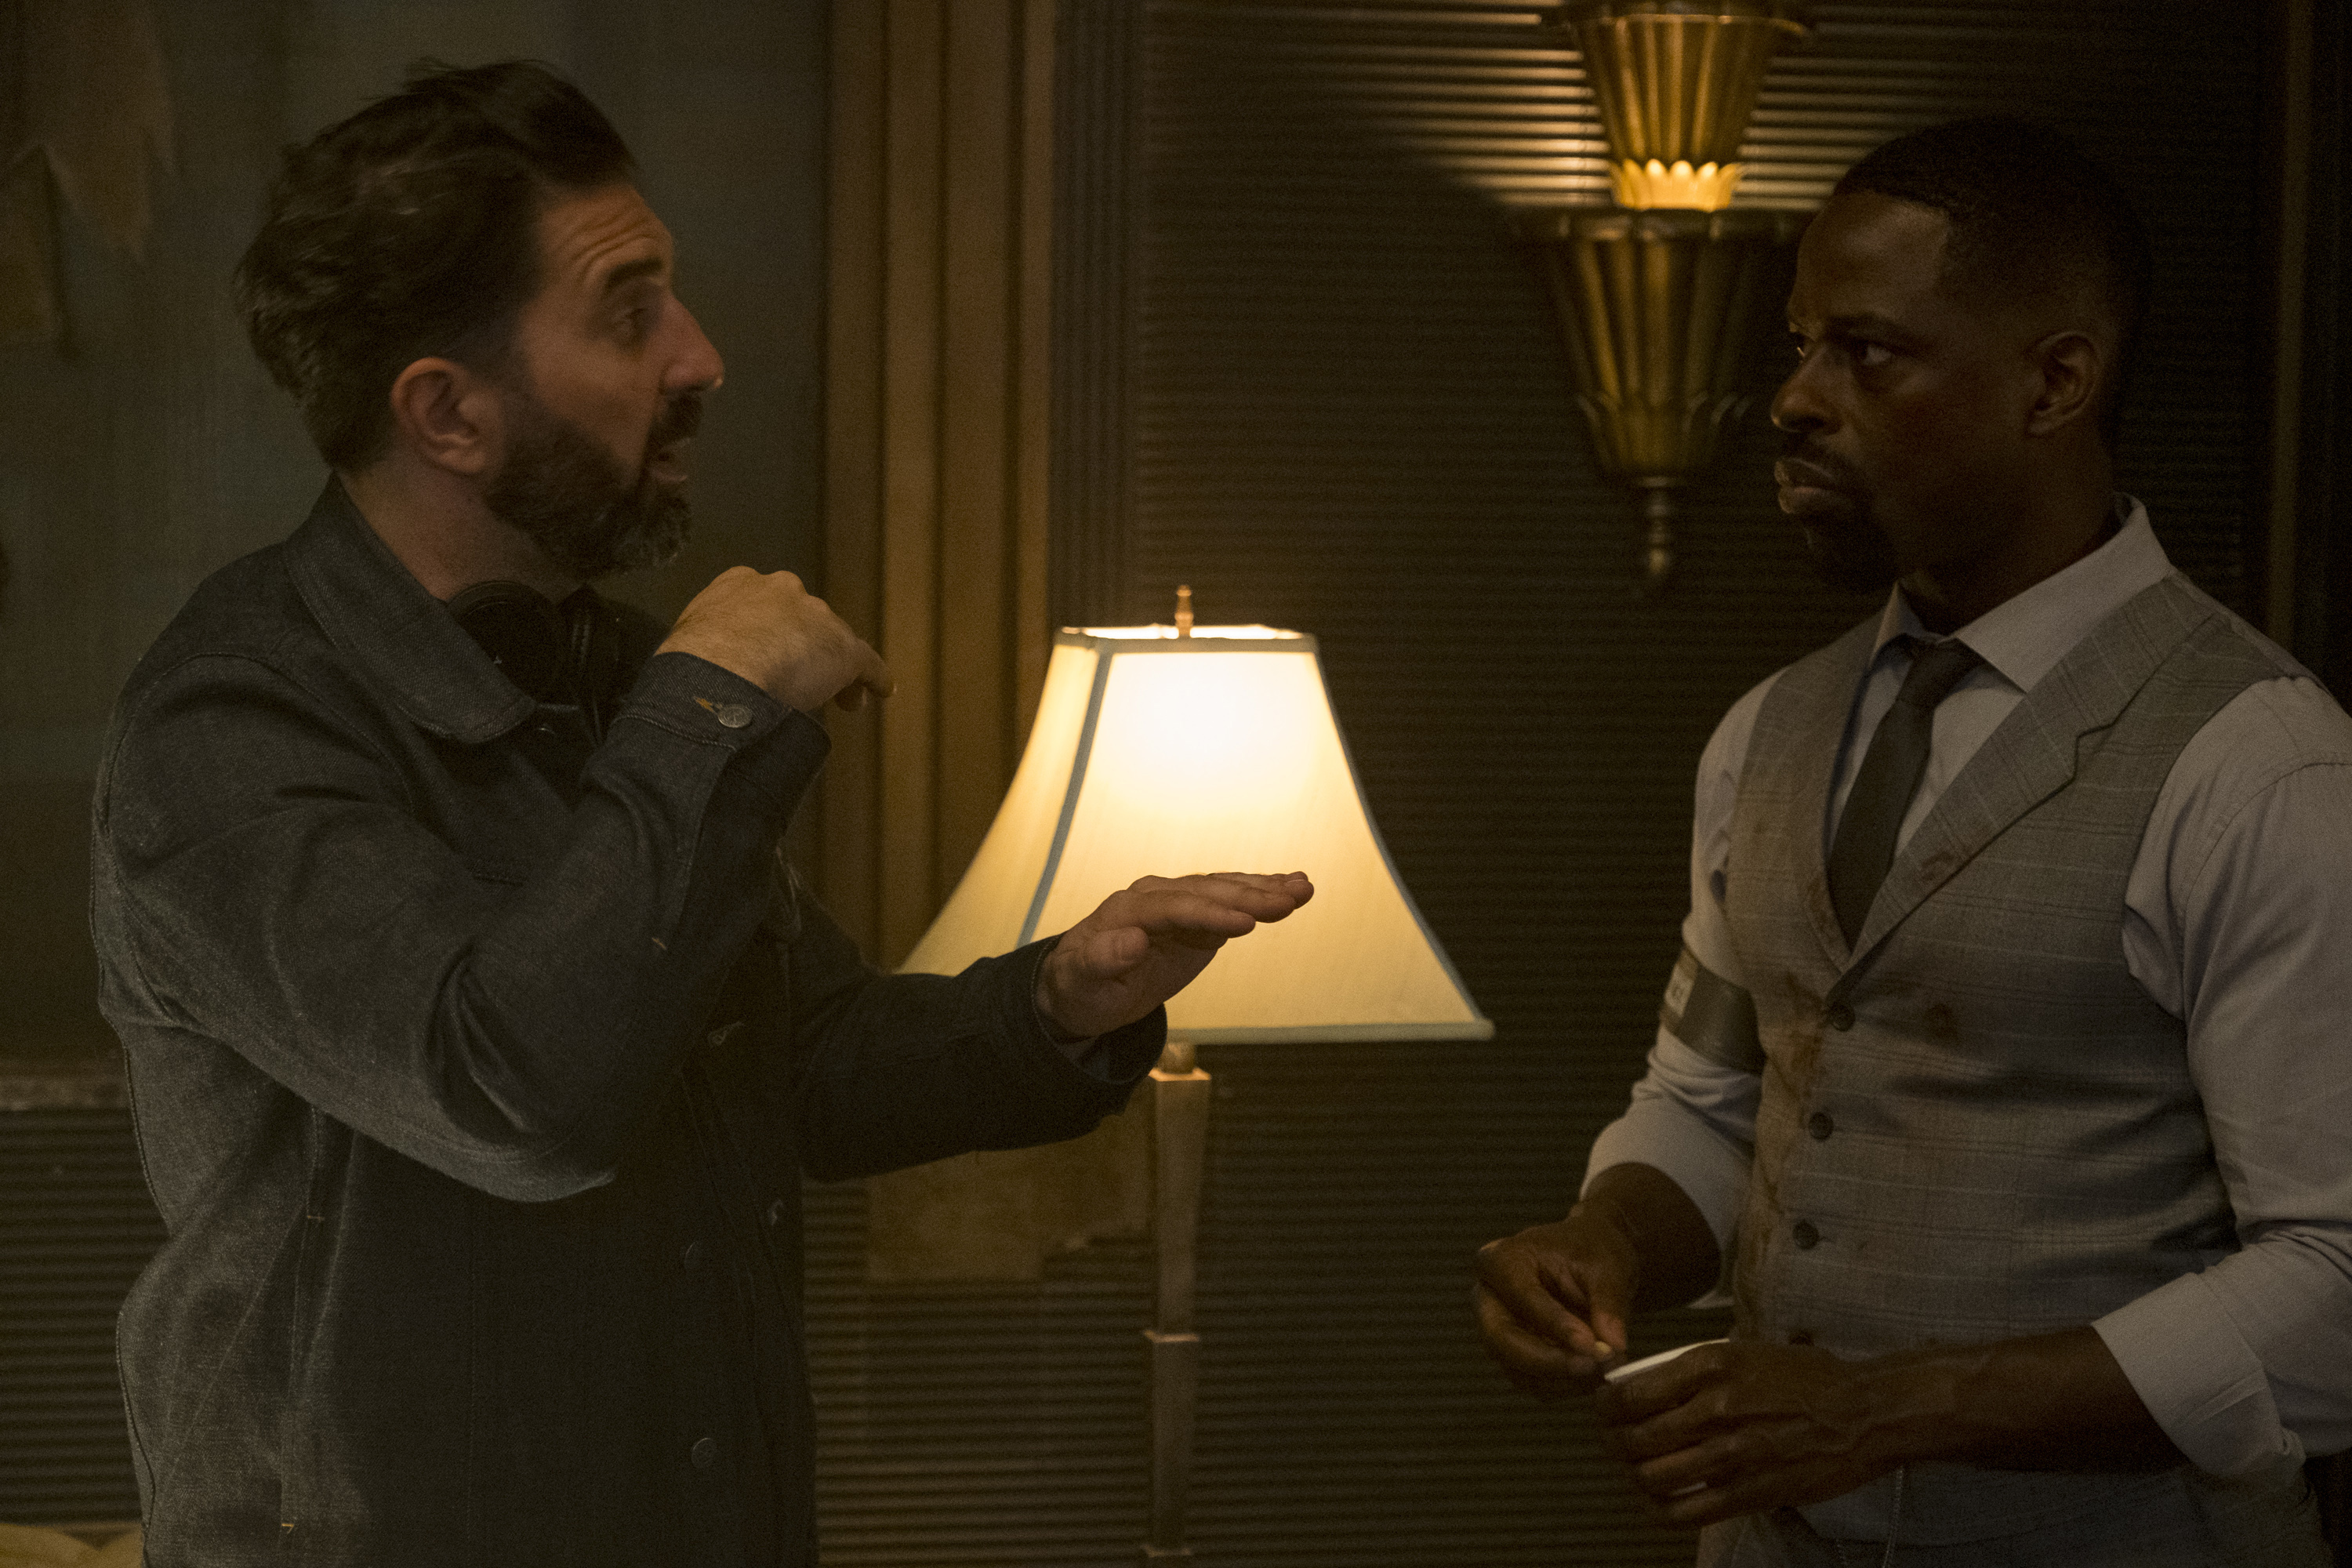 Drew Pearce and Sterling K. Brown